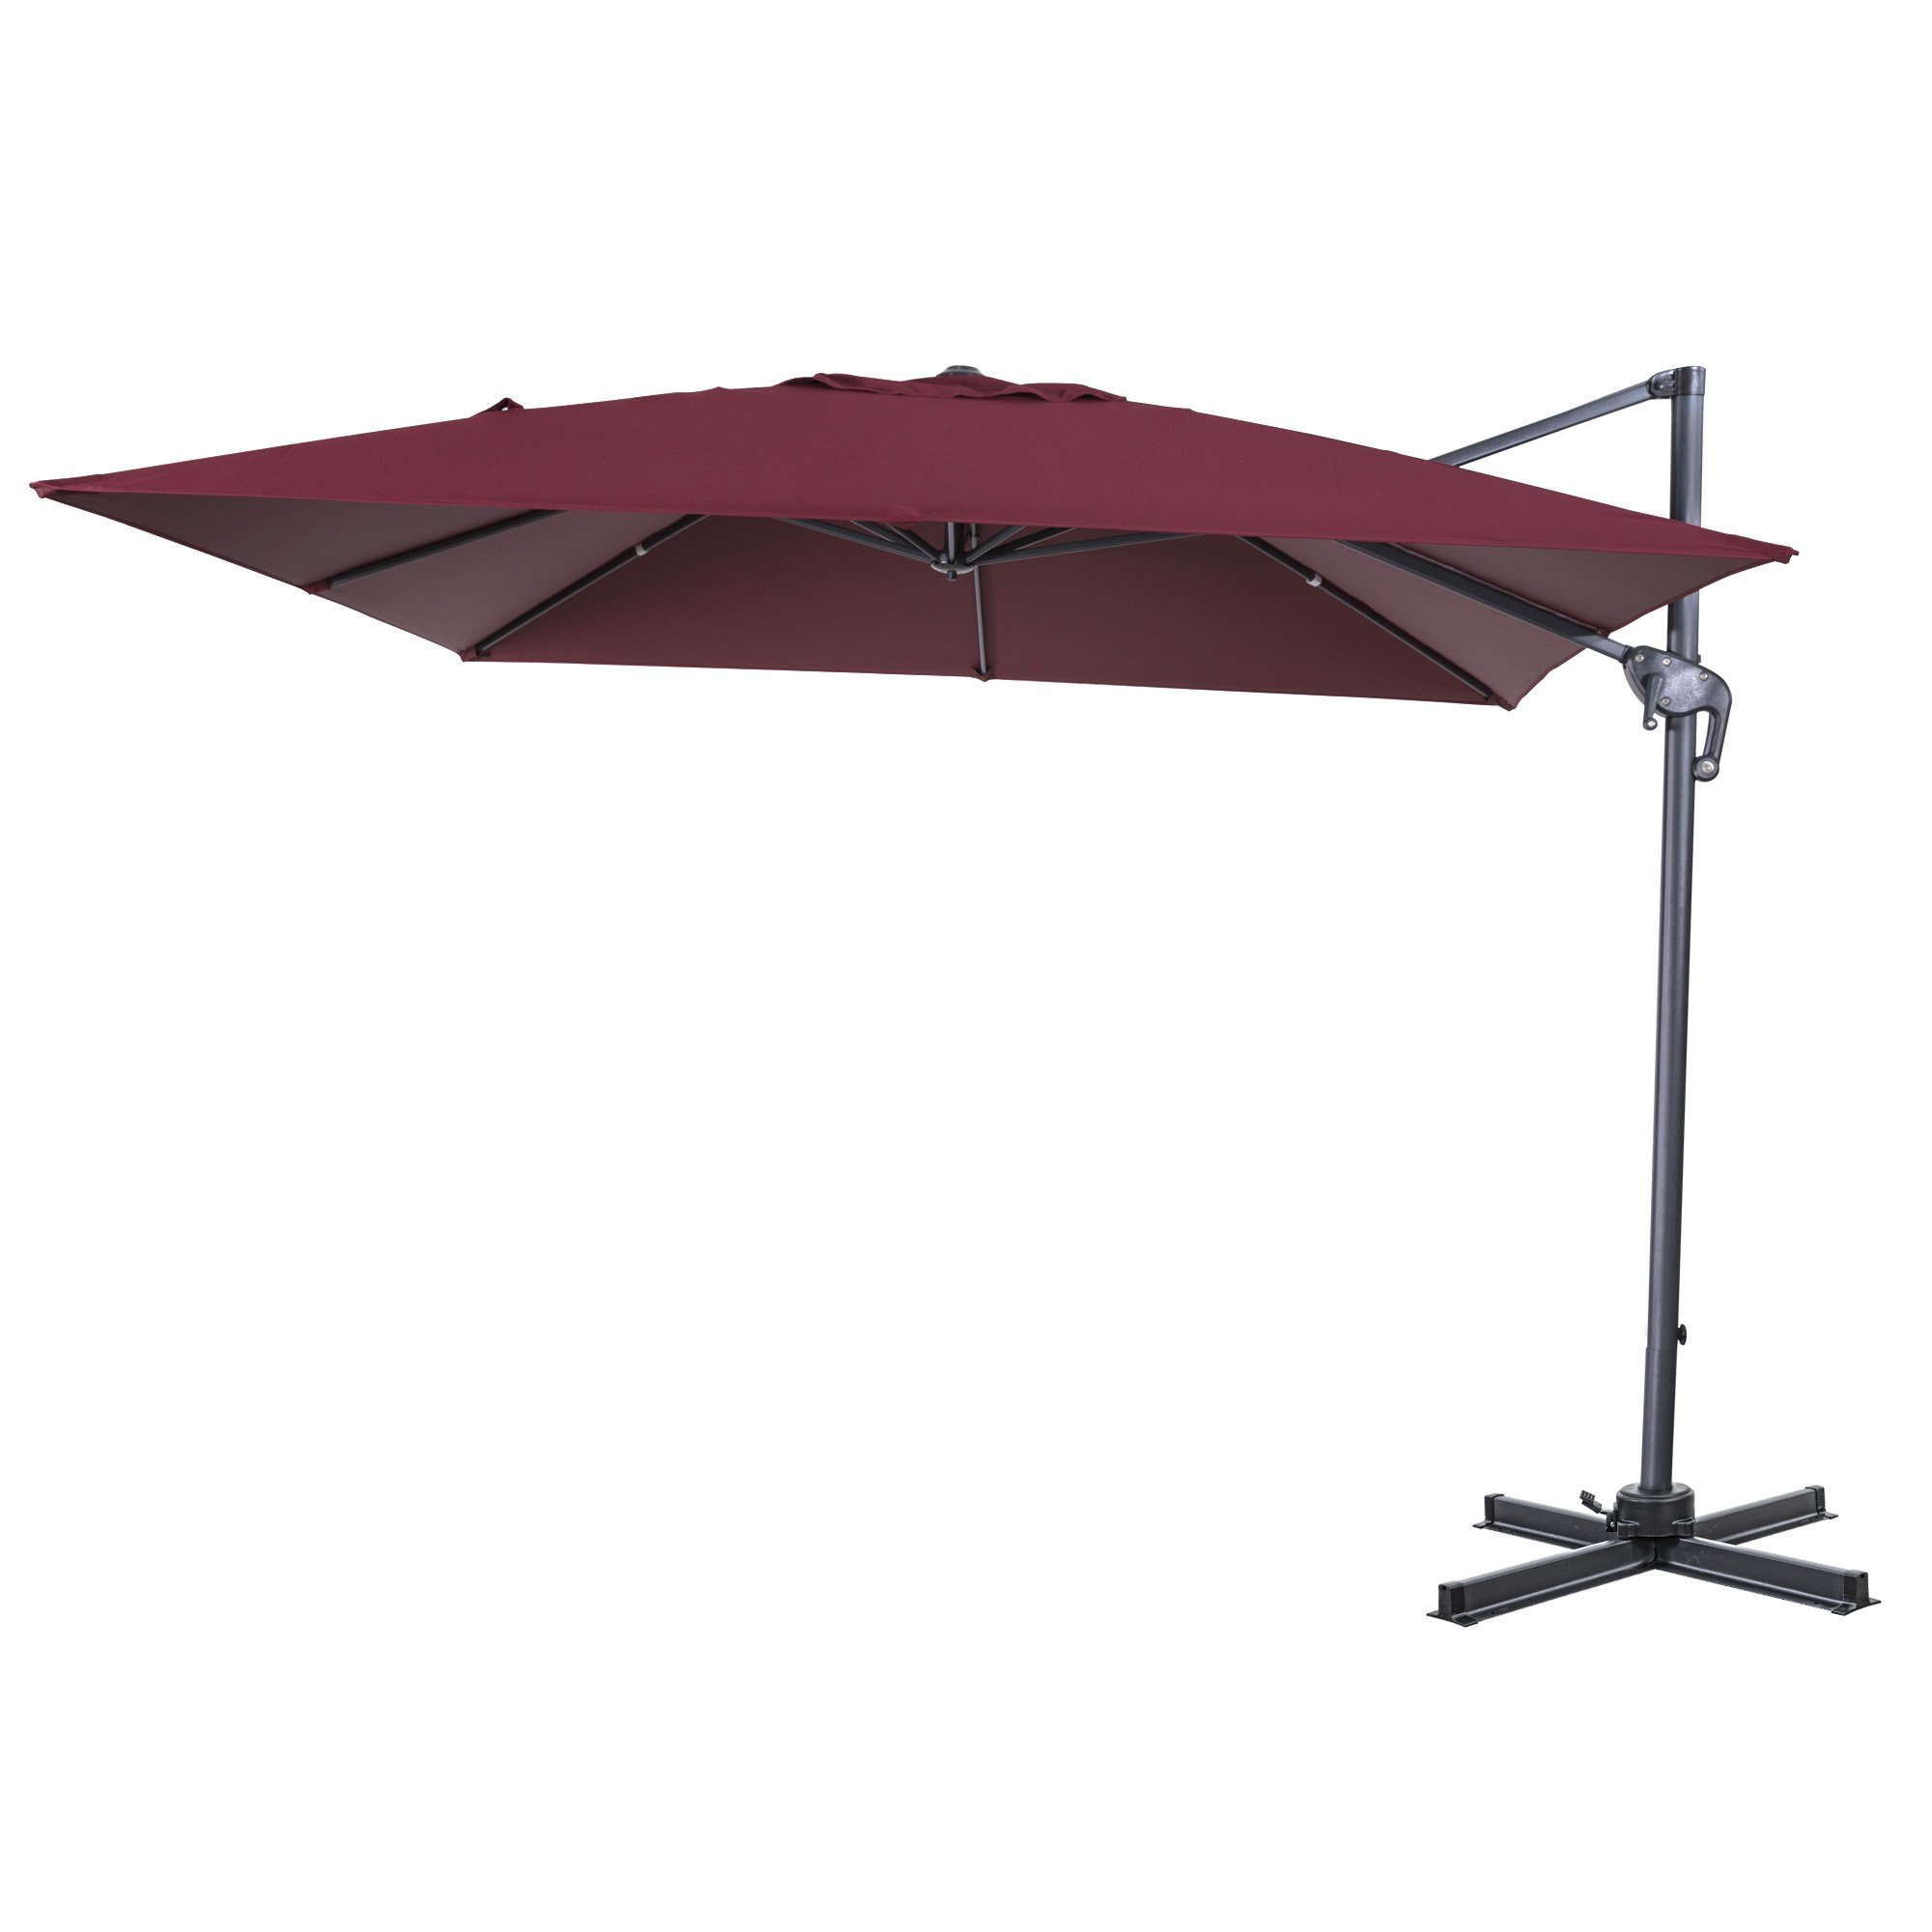 Favorite Elmhur Patio Offset 10' Cantilever Umbrella For Trotman Cantilever Umbrellas (View 9 of 20)